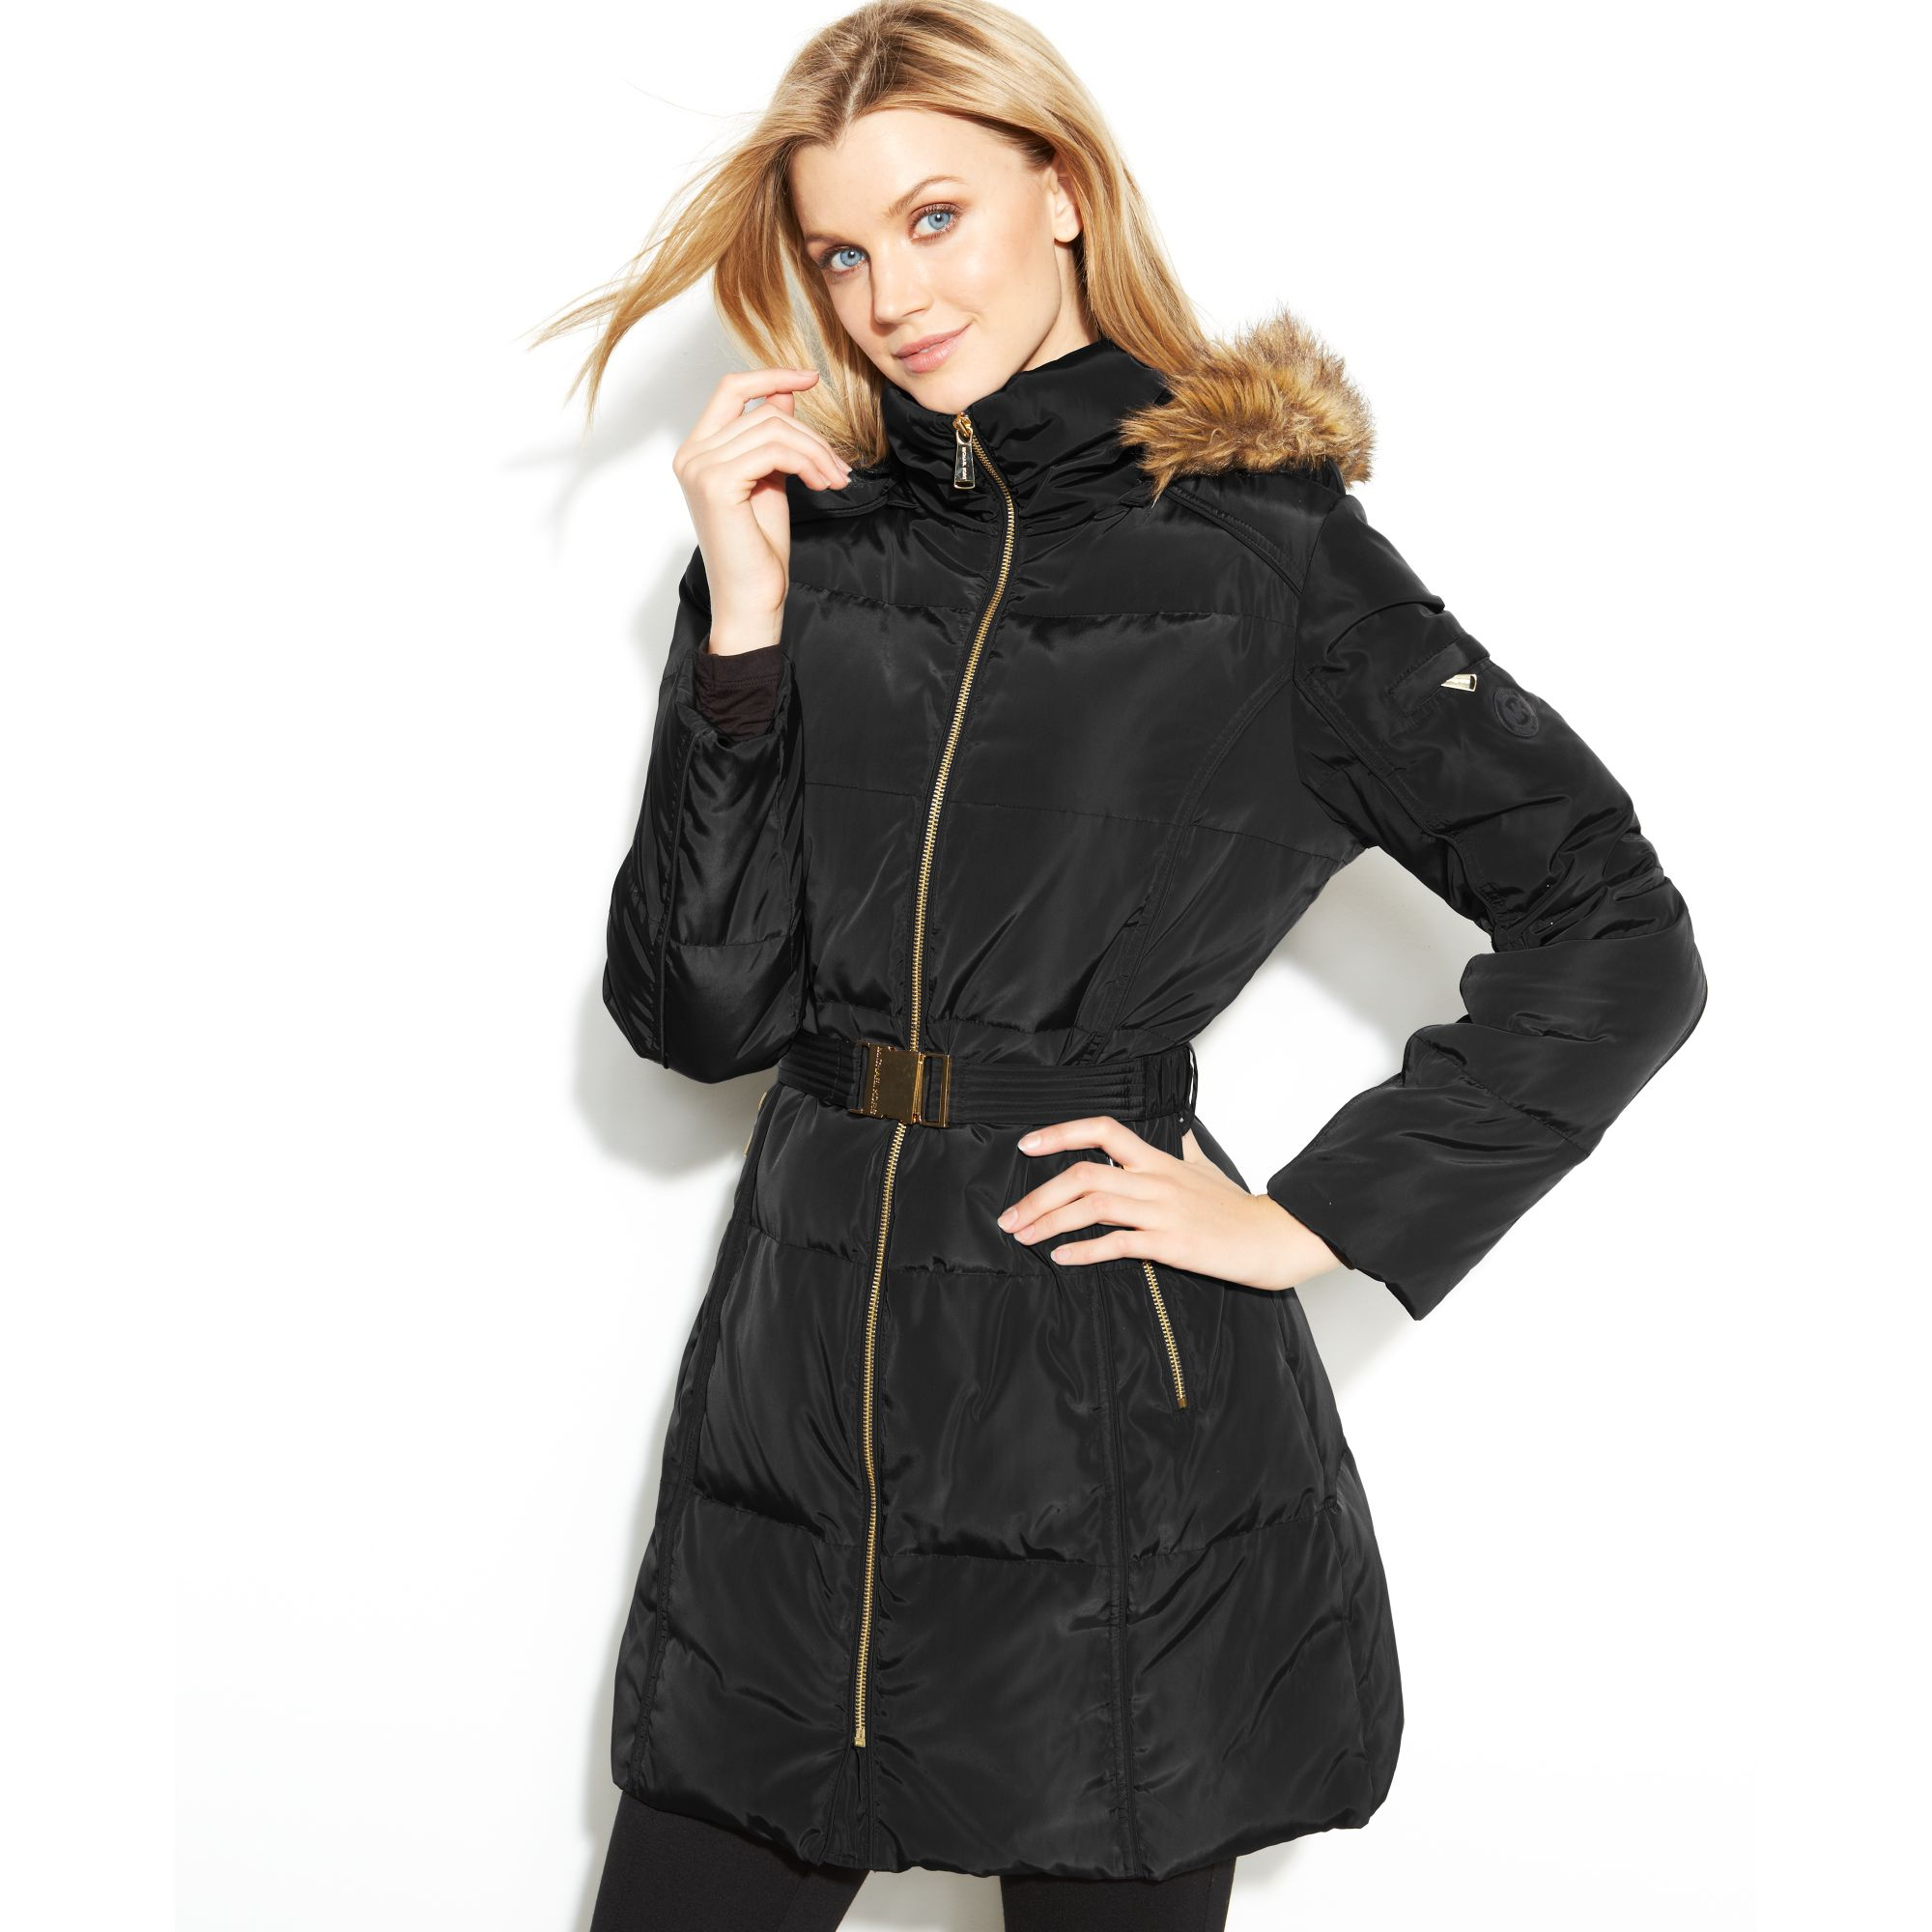 73b9caf48 Michael Kors Black Hooded Faux-fur-trim Belted Puffer